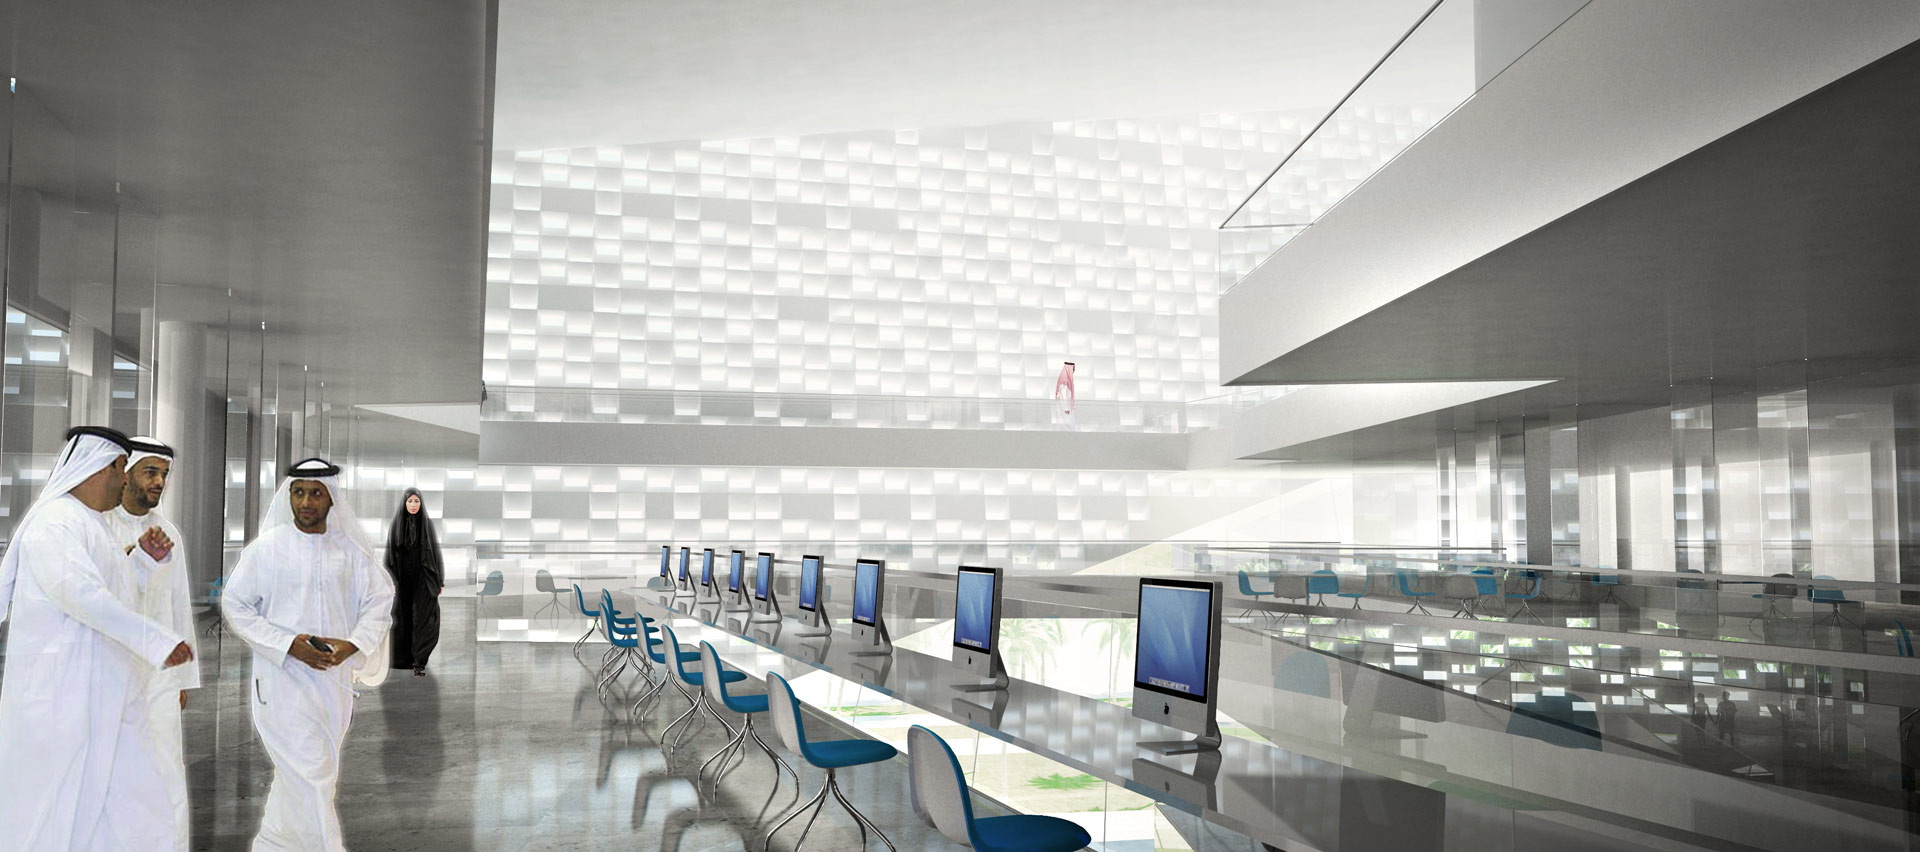 Prince naif centre by henning larsen architects for Interior design companies in riyadh